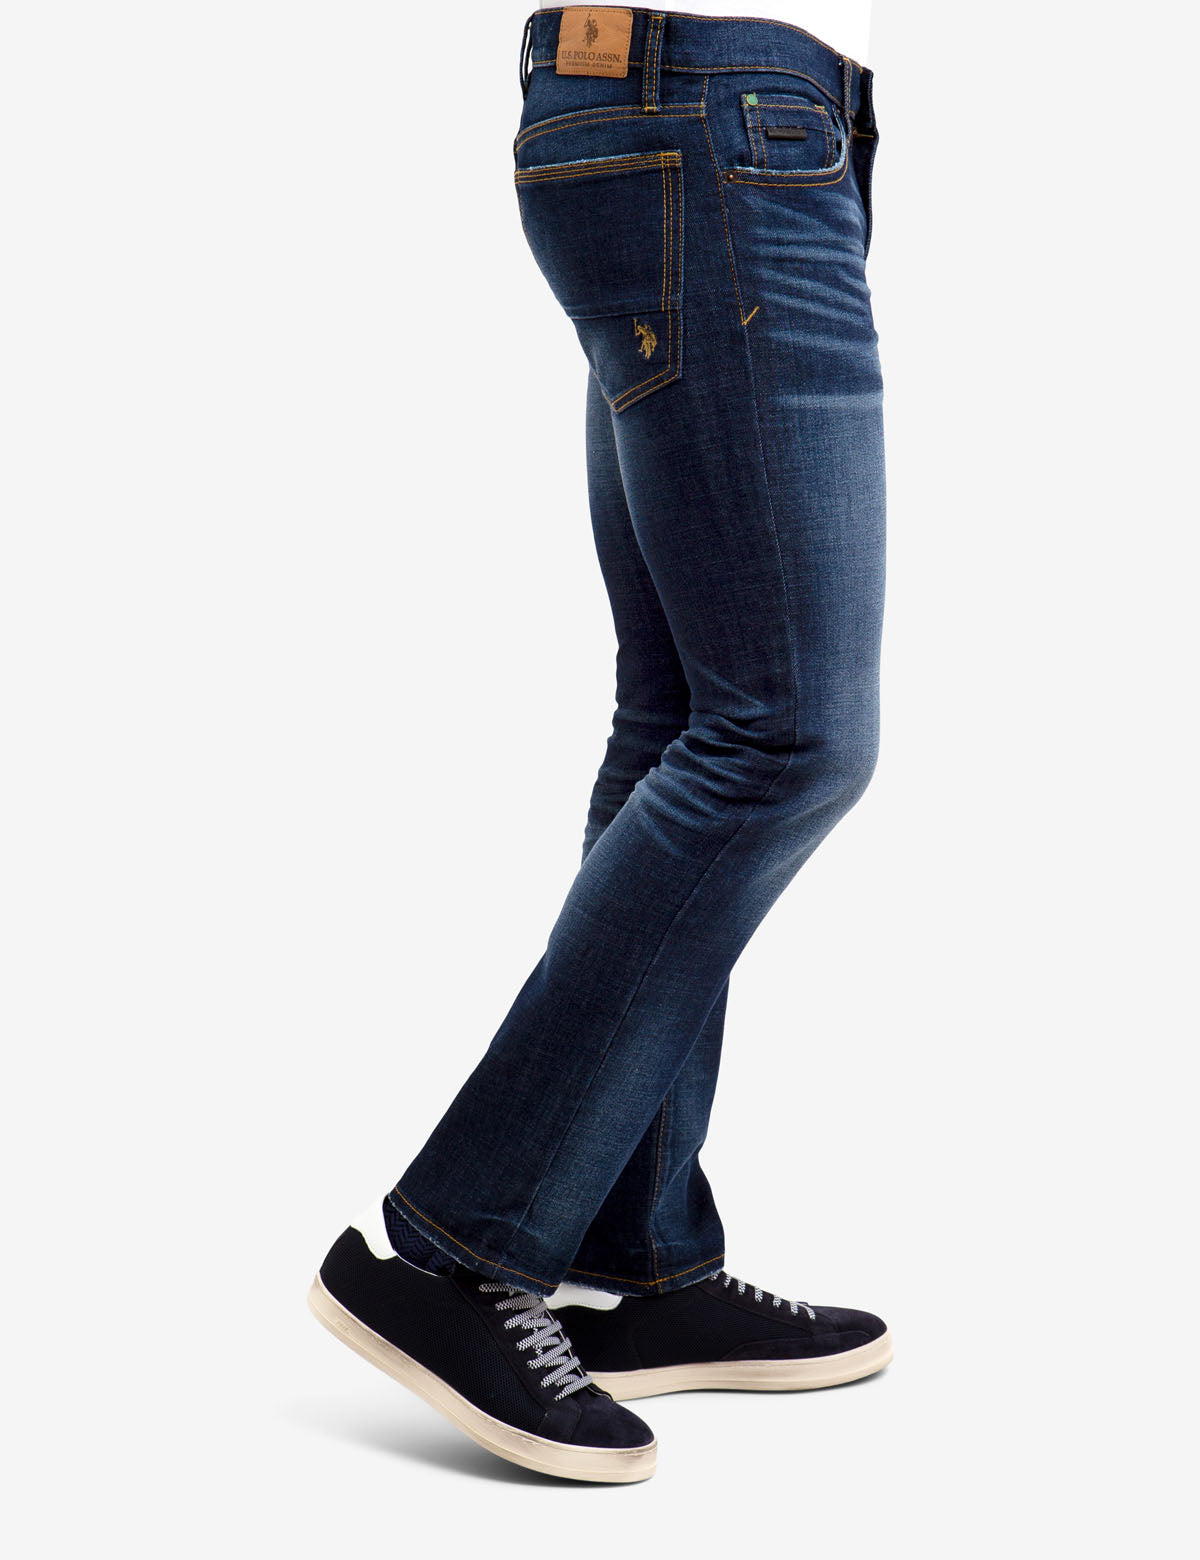 REPREVE® SLIM FIT JEANS - U.S. Polo Assn.